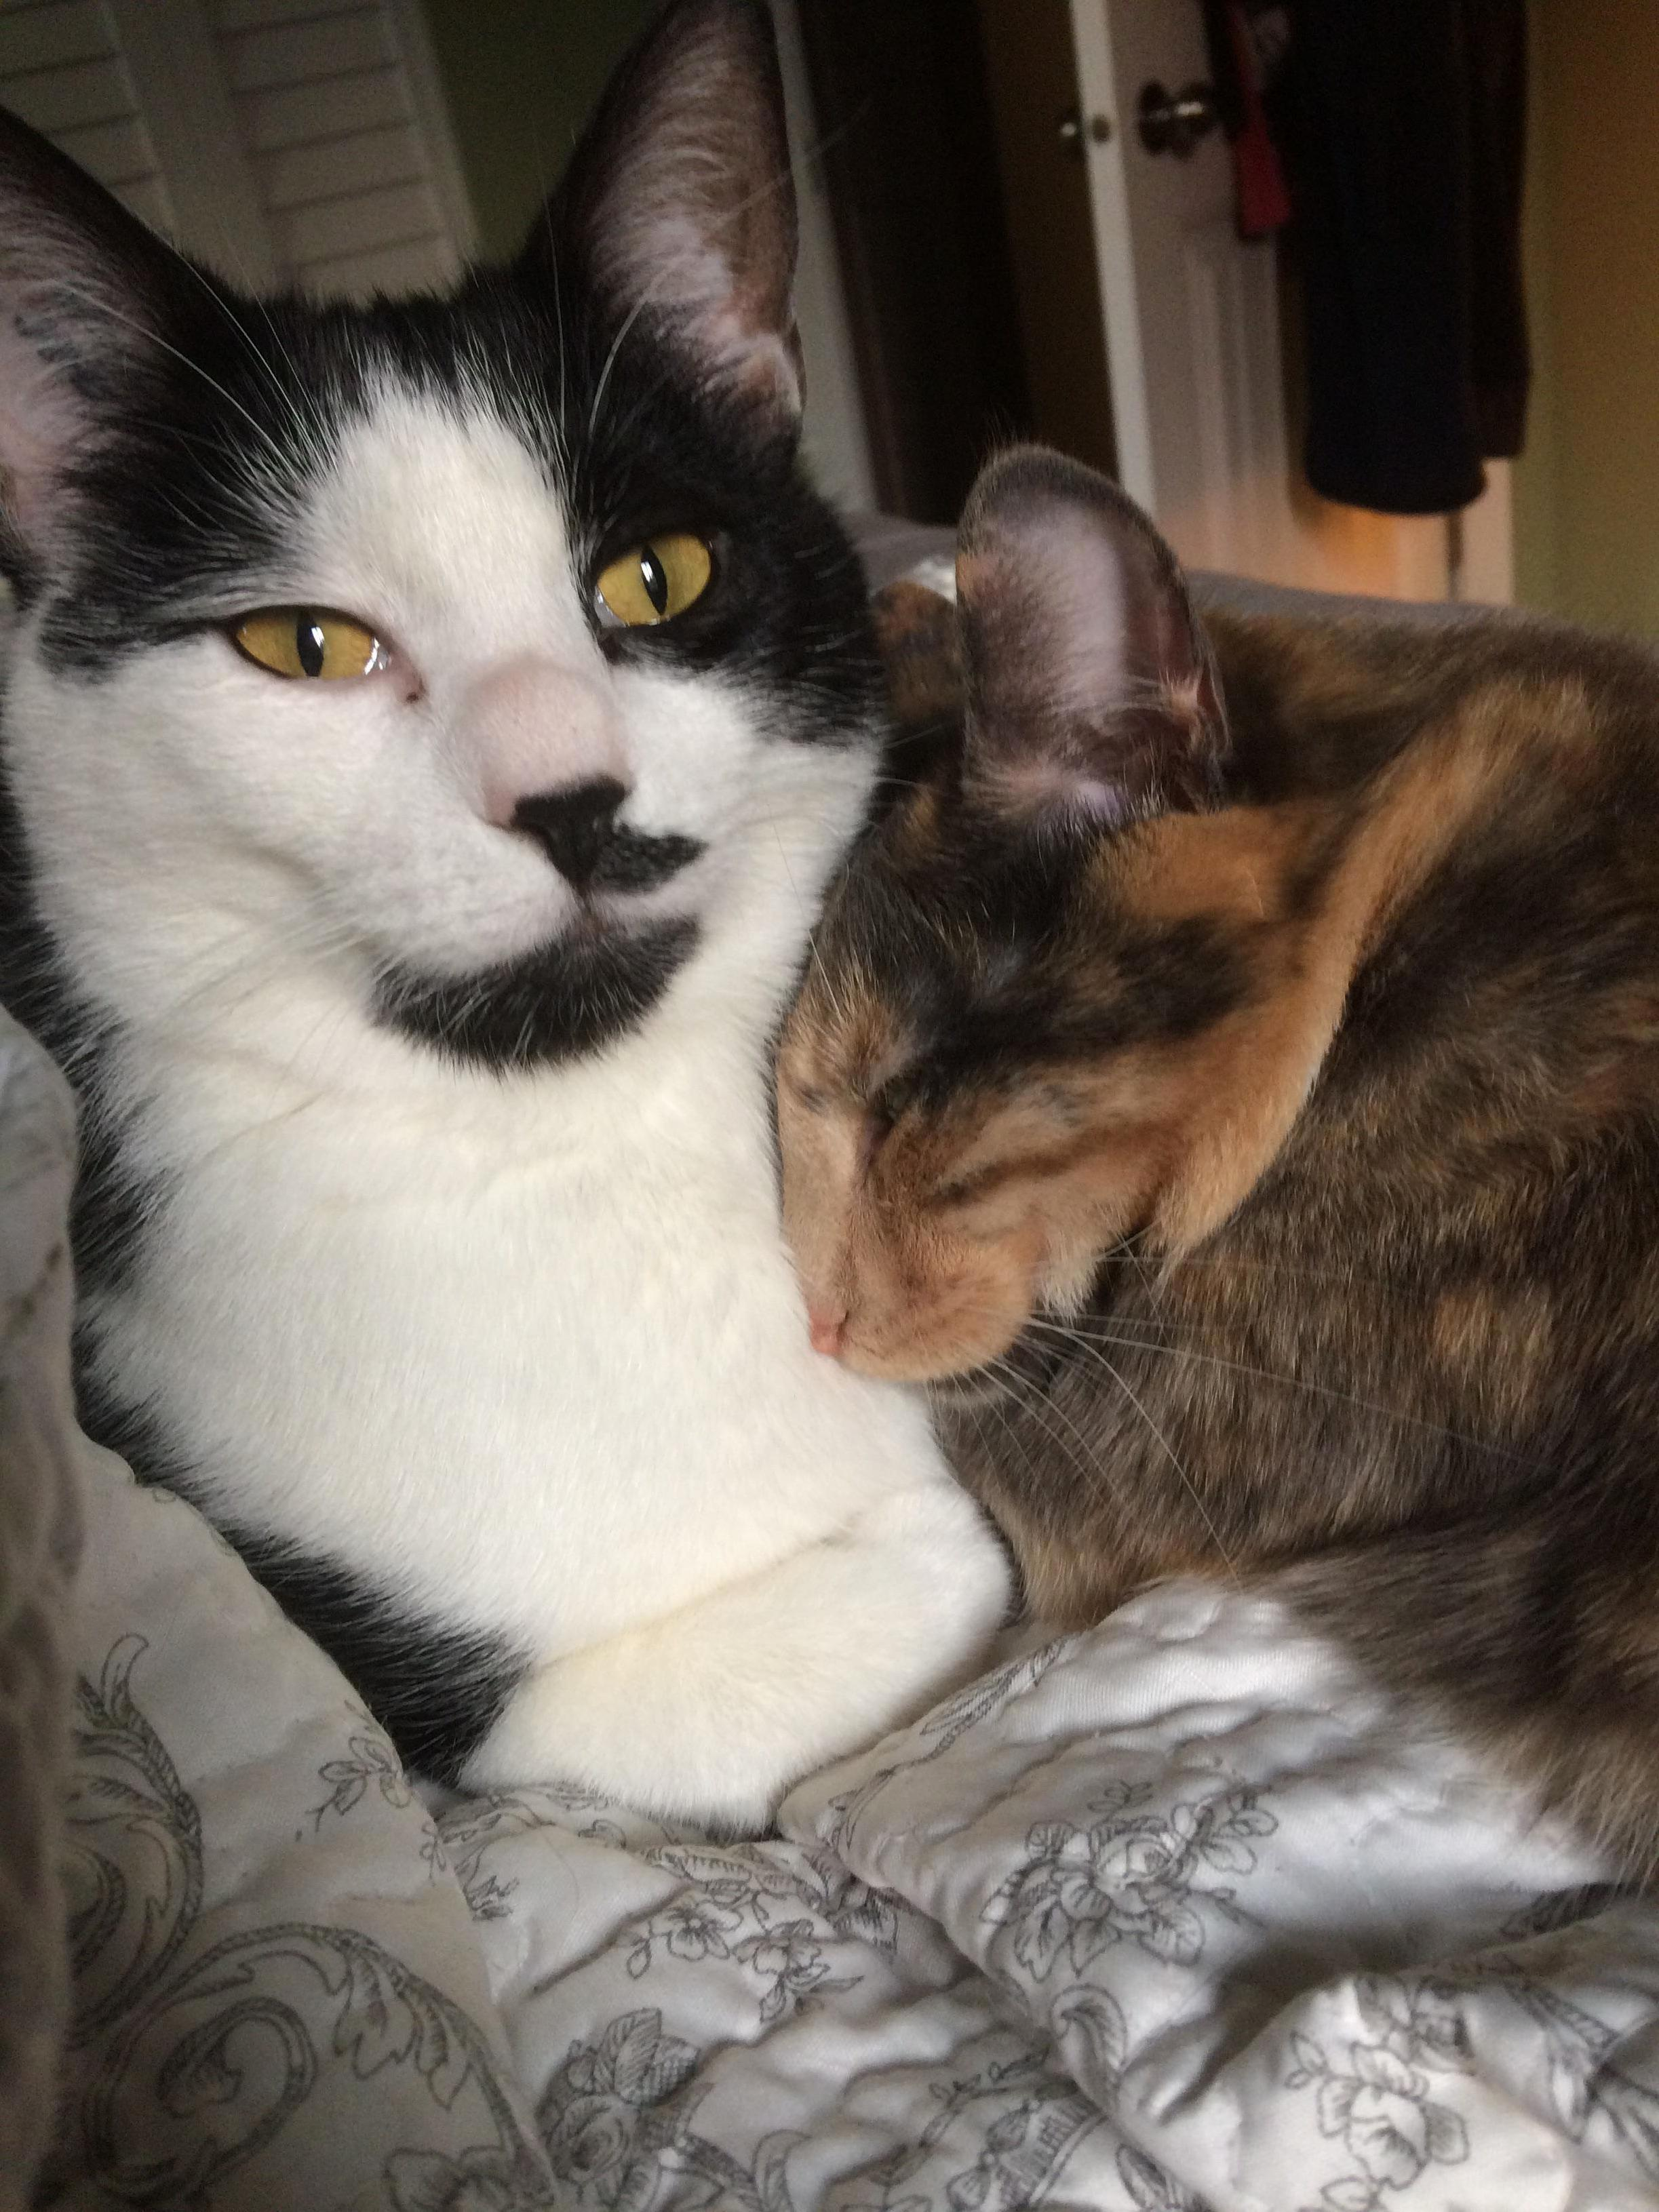 Todays cat pic is brought to you by tommie and june